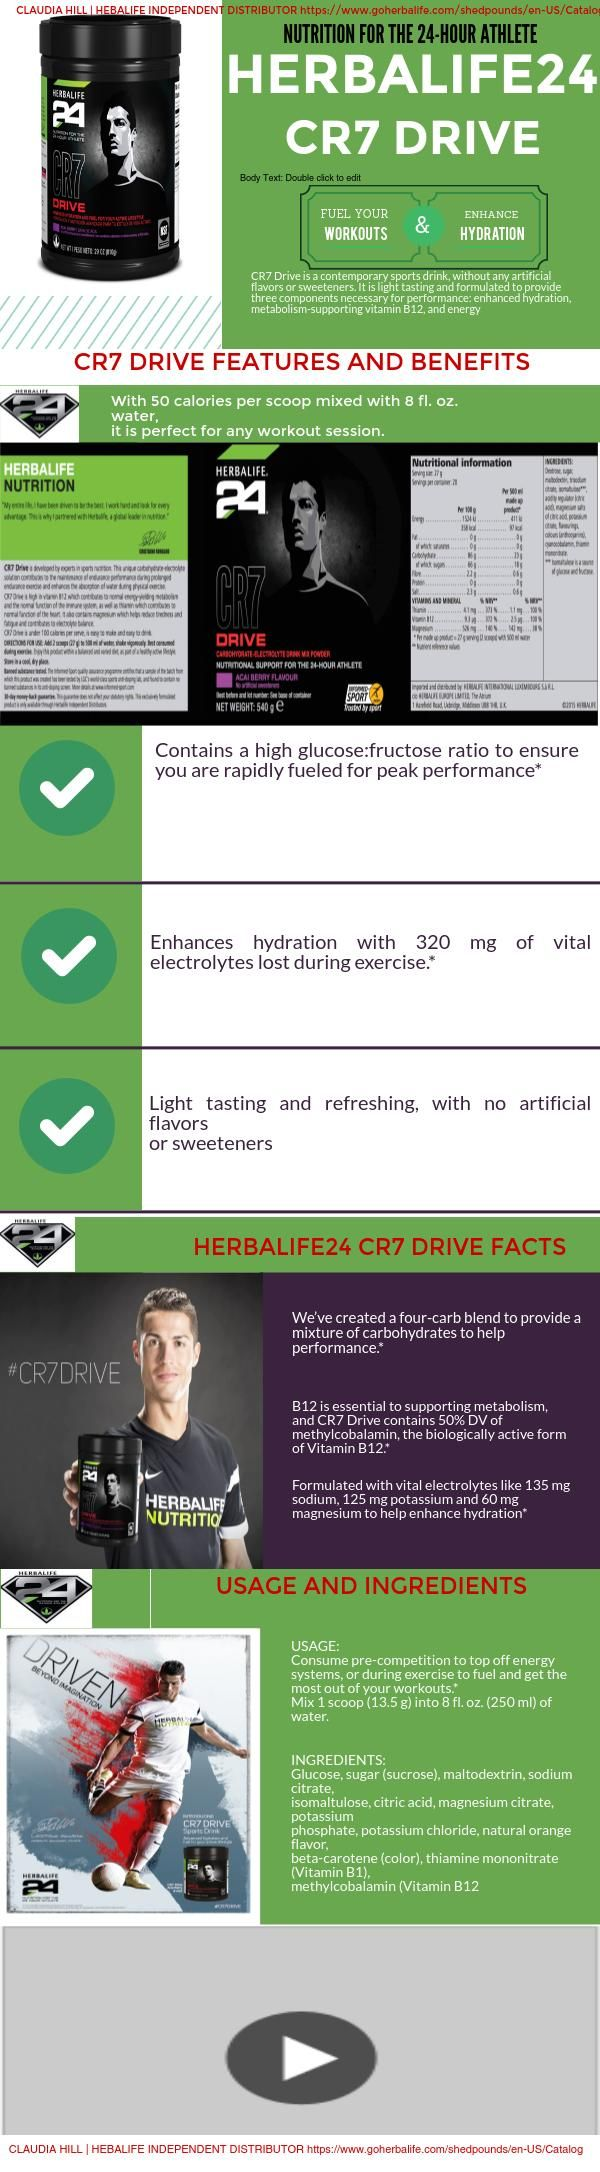 #CR7 #CR7DRIVE Infographic | Developed in close partnership with international soccer superstar Cristiano Ronaldo, CR7 Drive Rapidly fuel your workouts and enhance hydration. available at https://www.goherbalife.com/tracyshook/en-CA #Herbalife24 #CR7DRIVE Cristiano Ronaldo #CR7